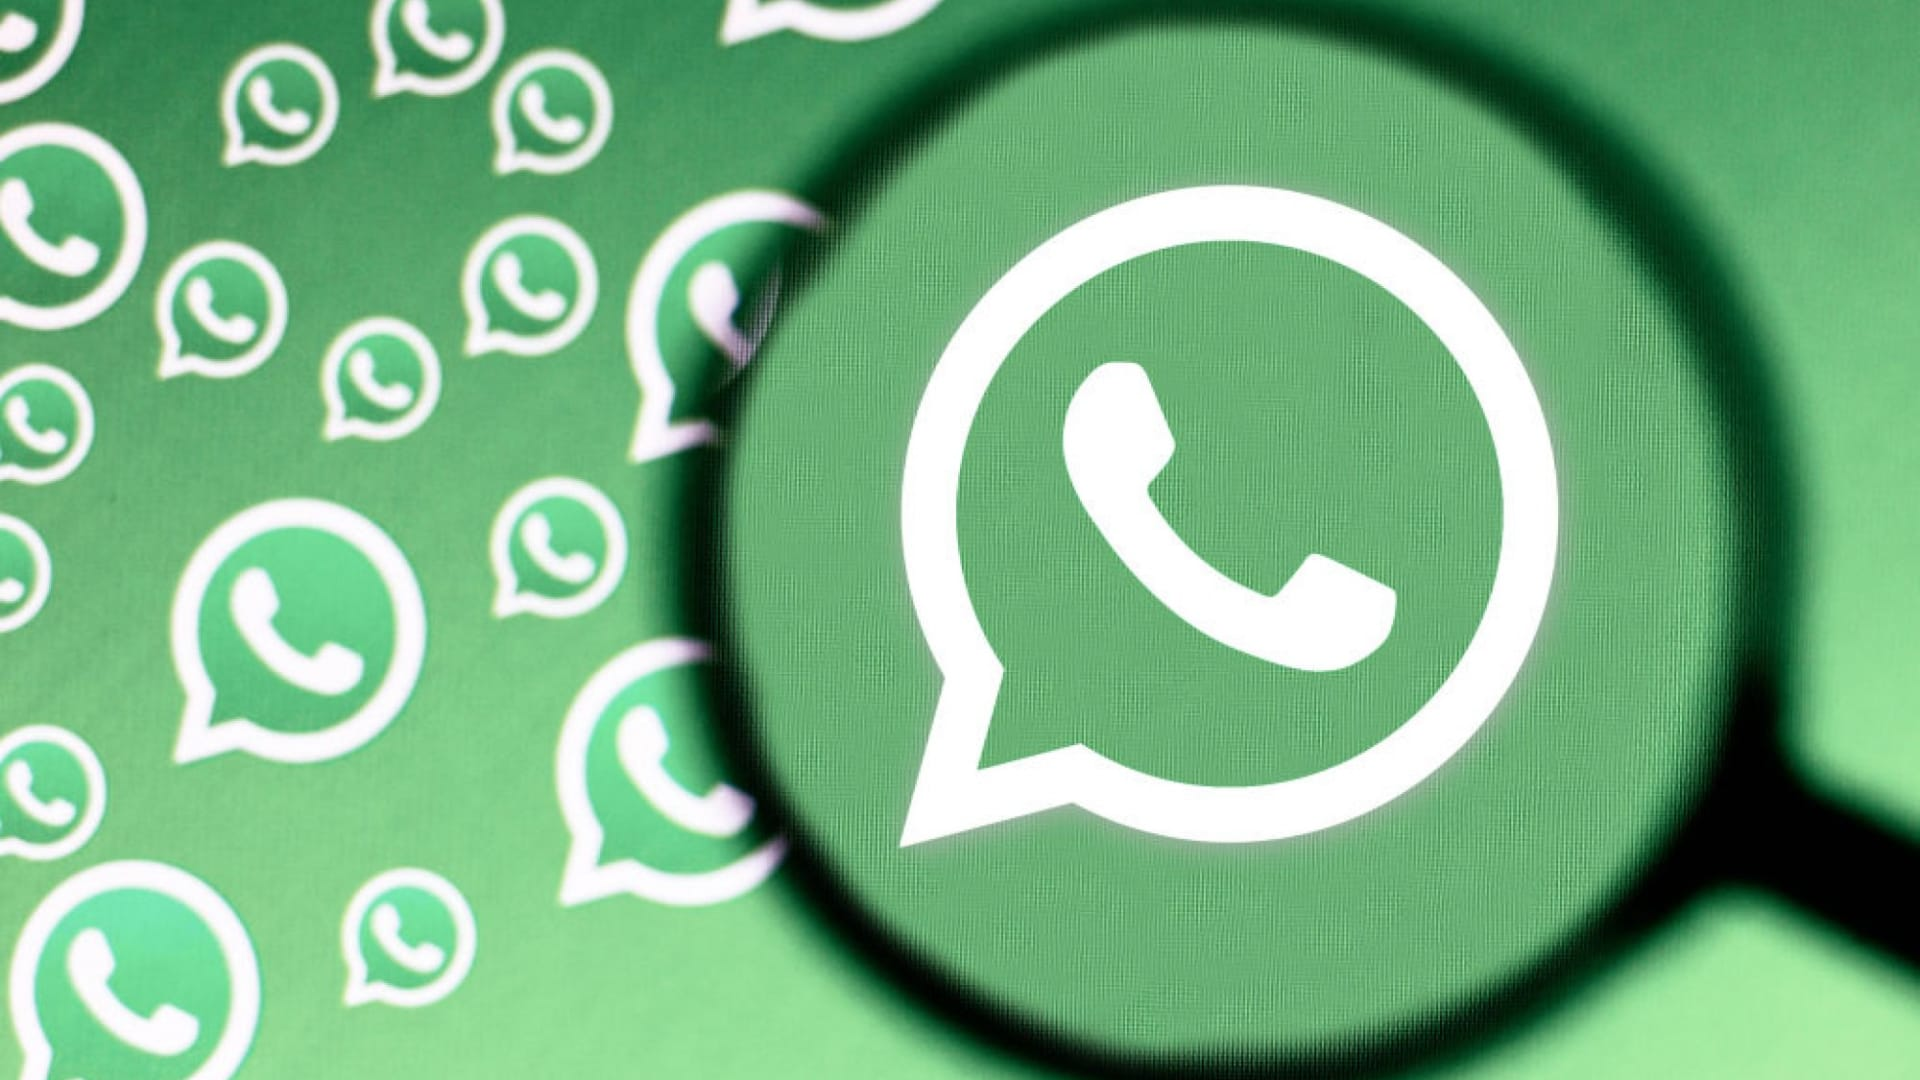 The CEO of WhatsApp Attacked Apple Over Privacy. He Seems to Have Forgotten He Works for Facebook